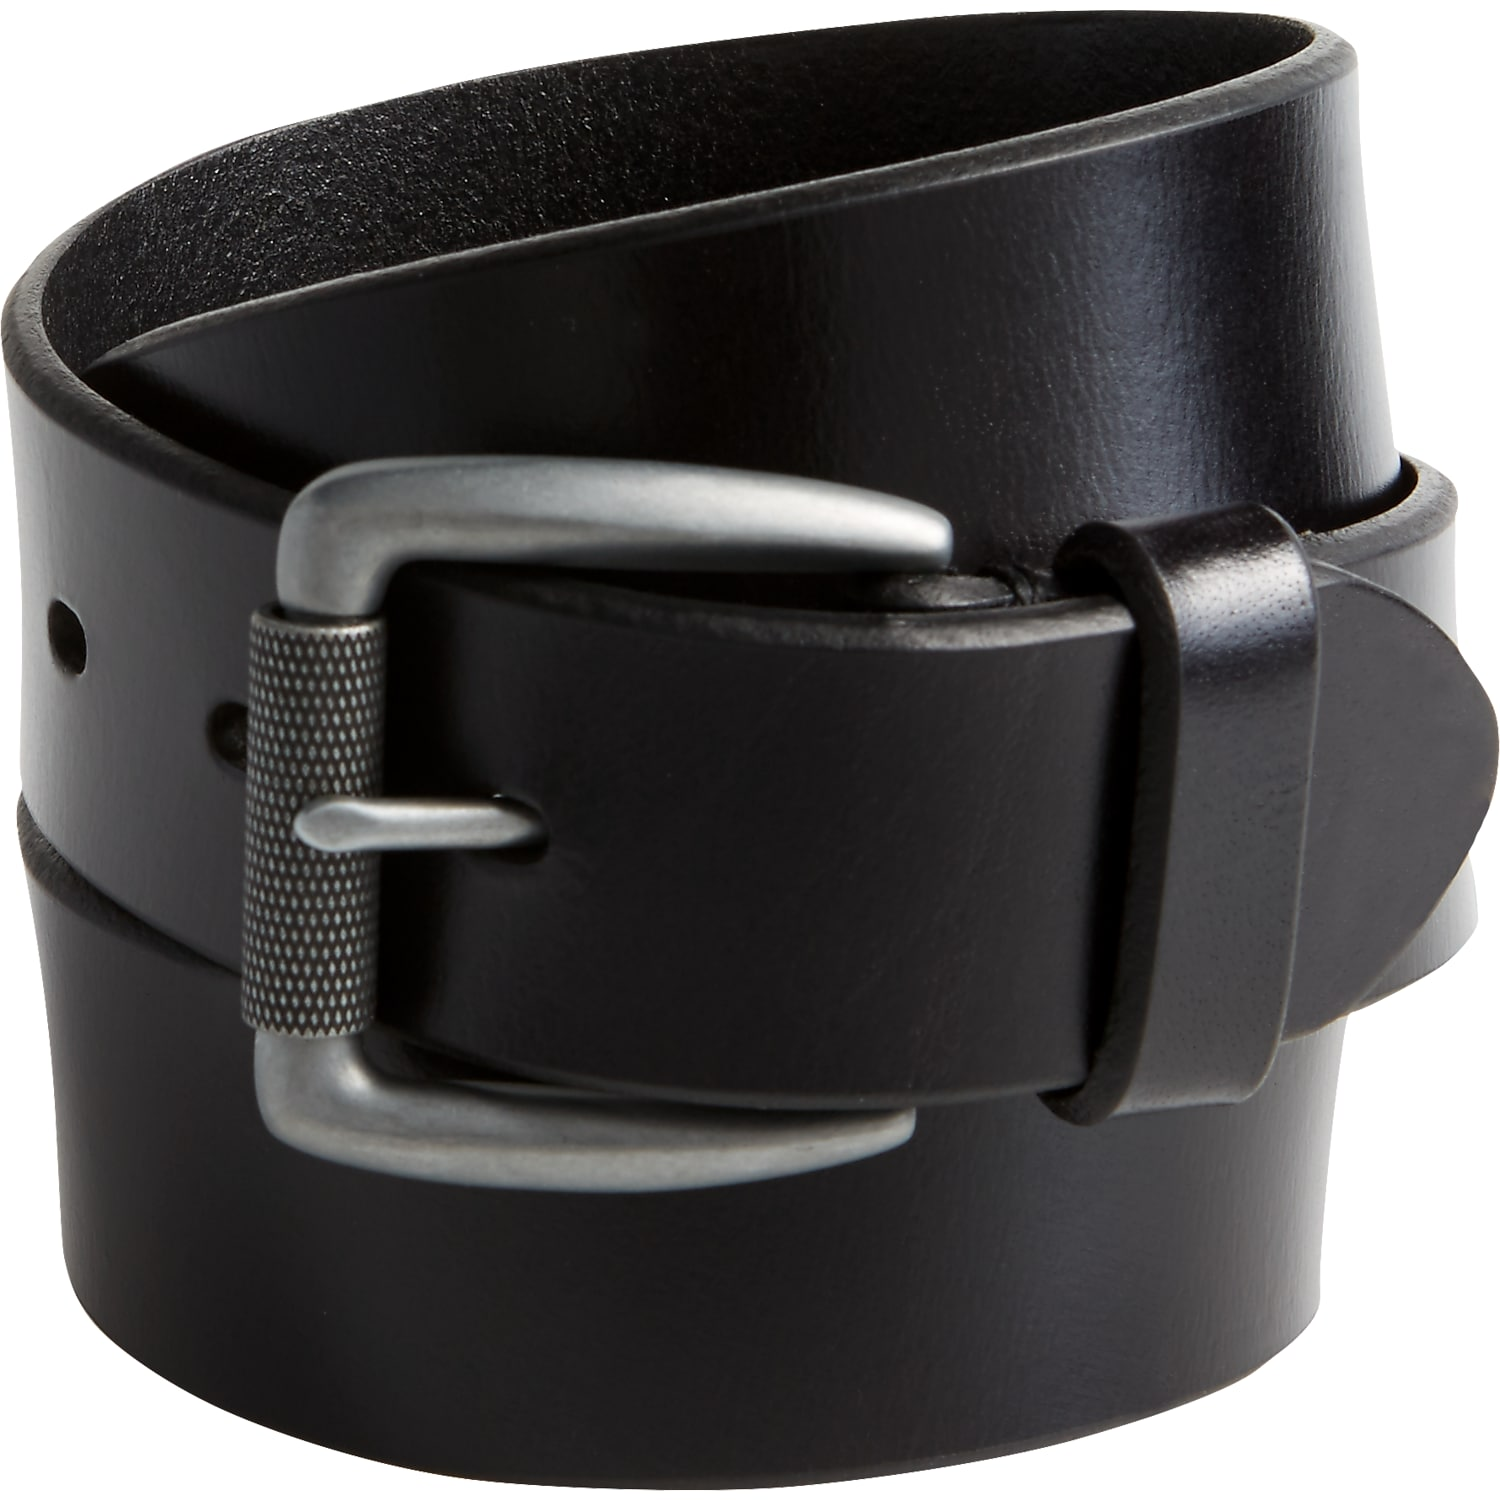 Small Leather Goods - Belts True Royal 1yKv5PLB